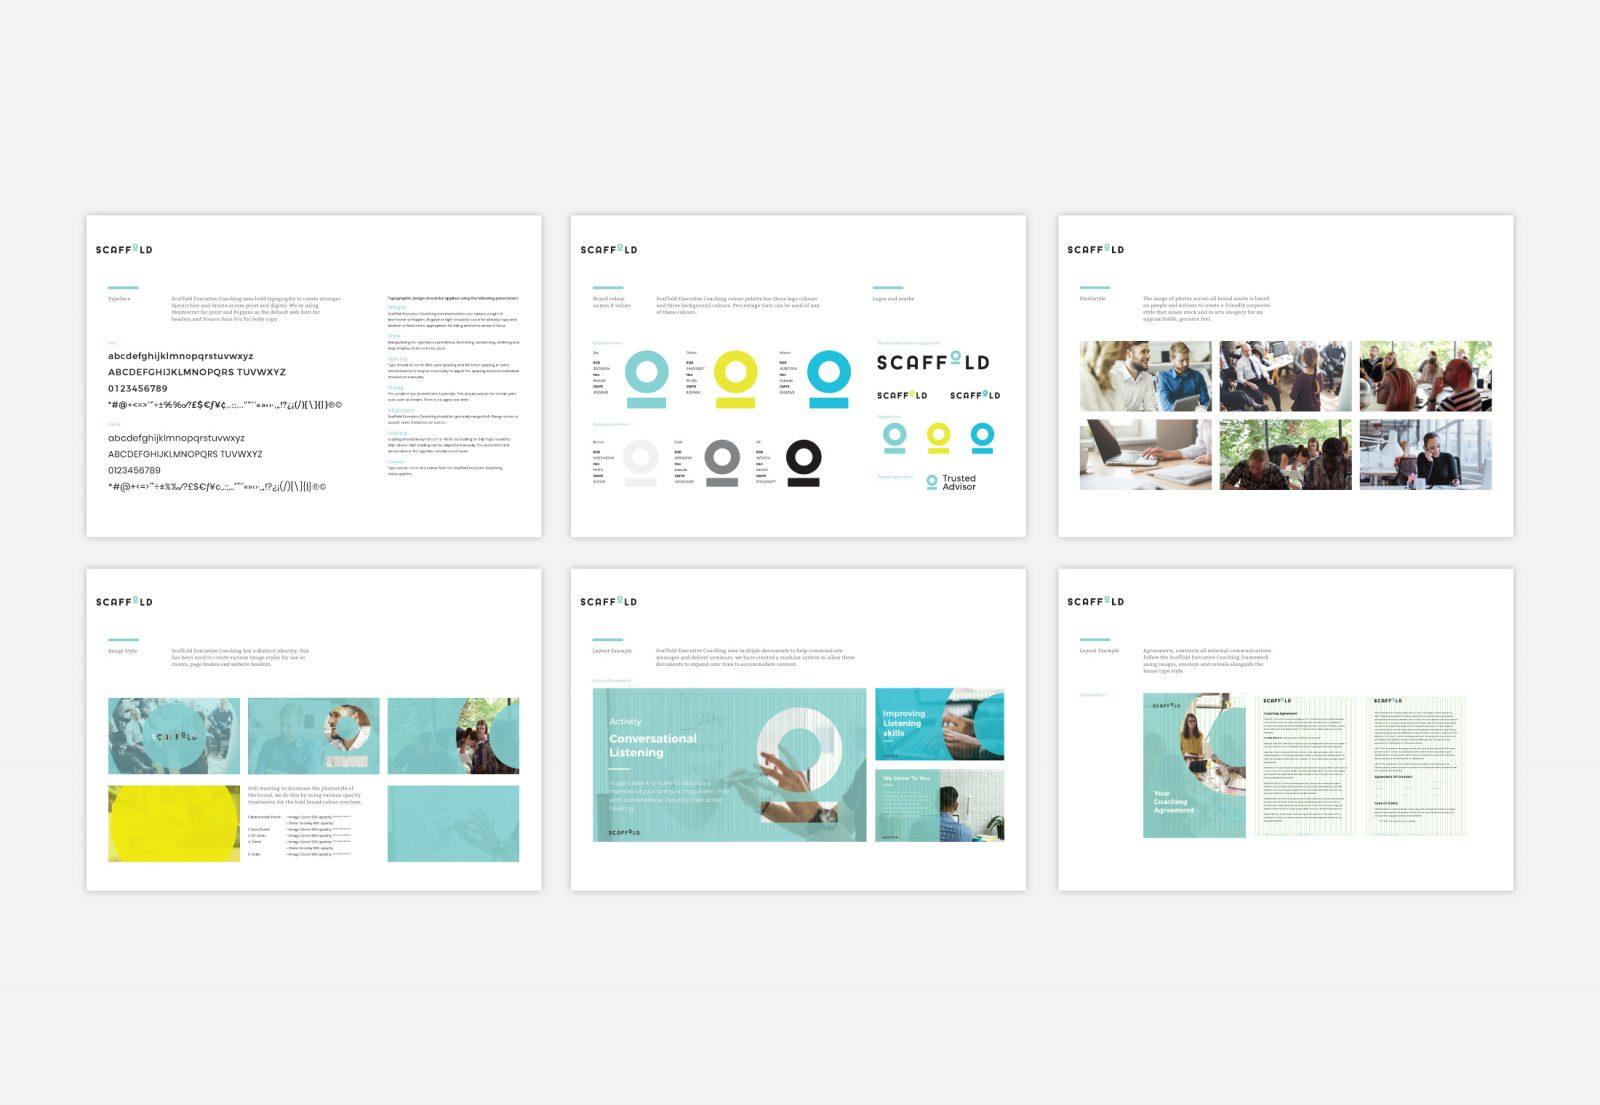 Scaffold Executive Coaching Brand Guidelines